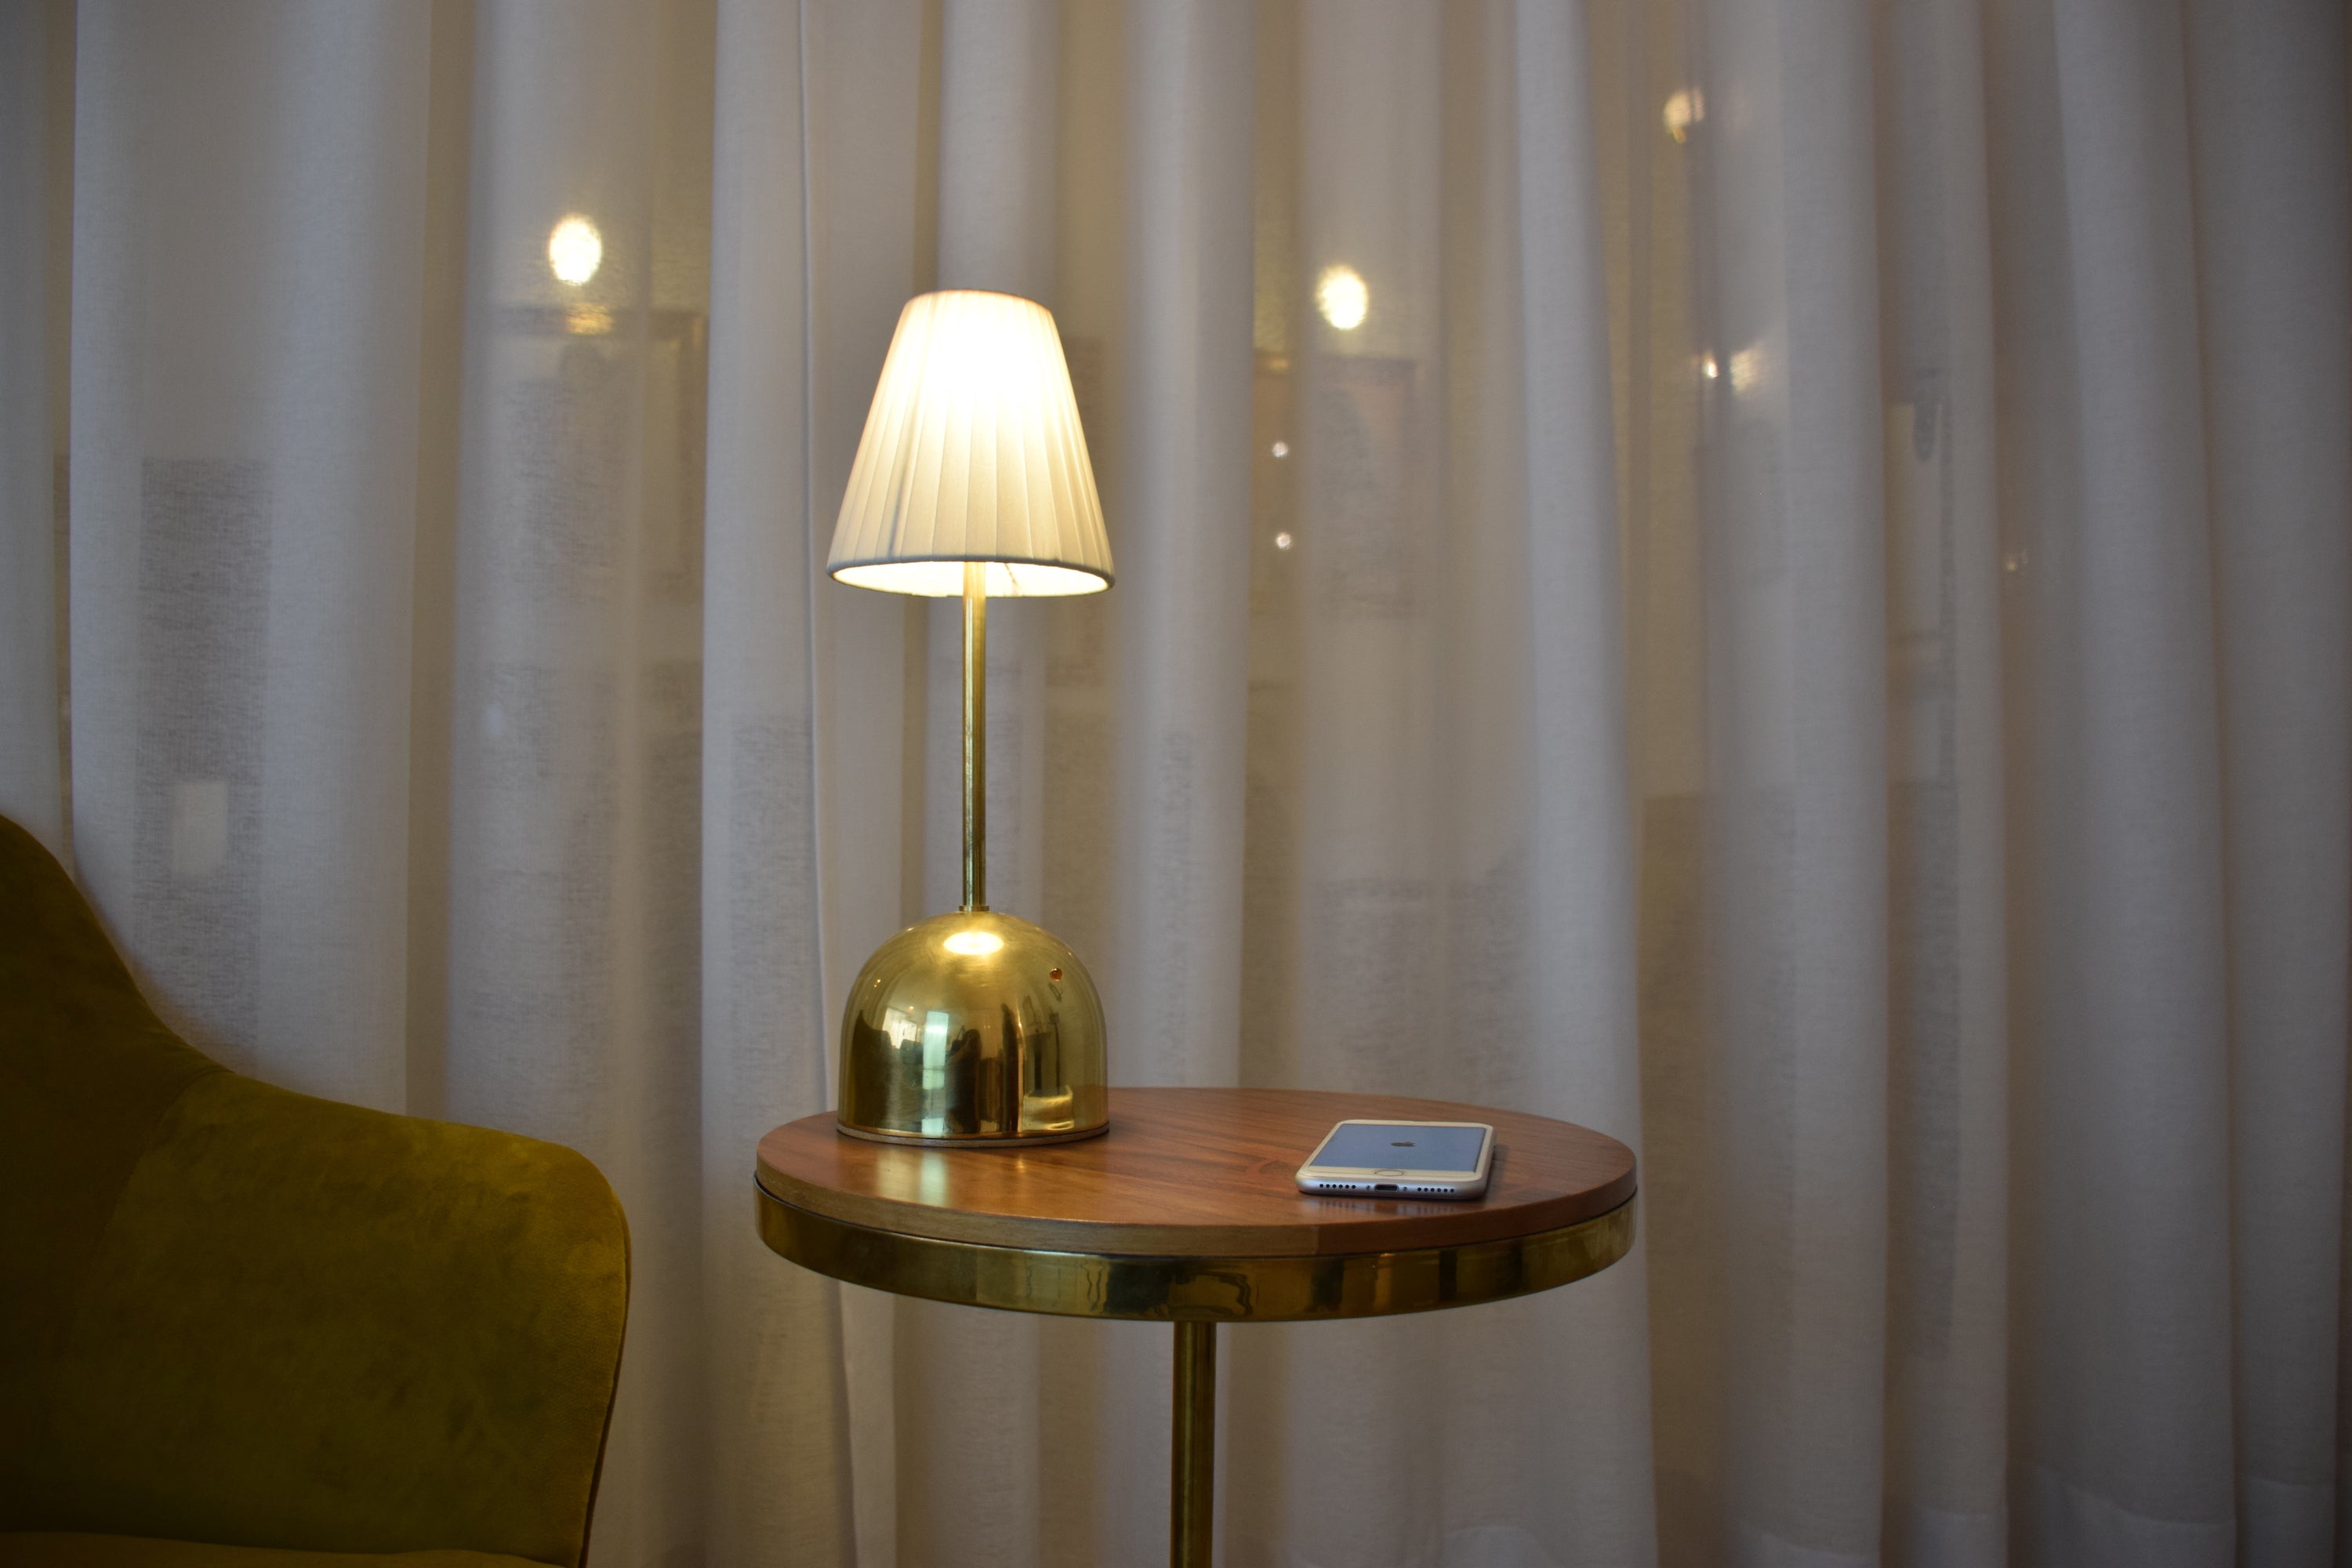 Contemporary vintage wireless LED lamp and charging table